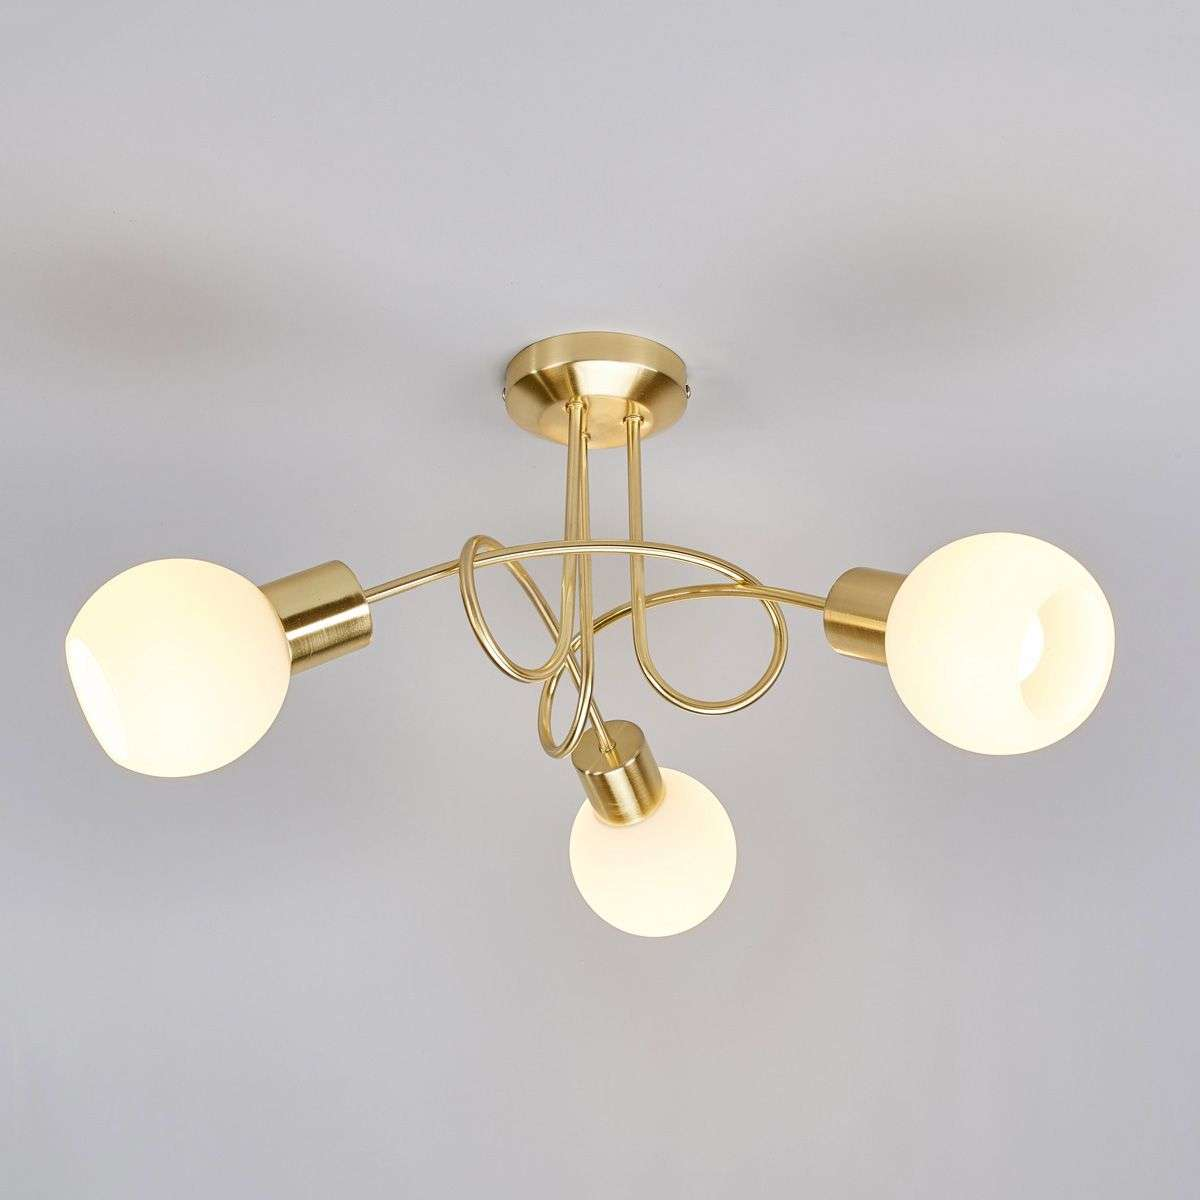 Led Ceiling Lights Brass : Brass coloured led ceiling light elaina bulb lights